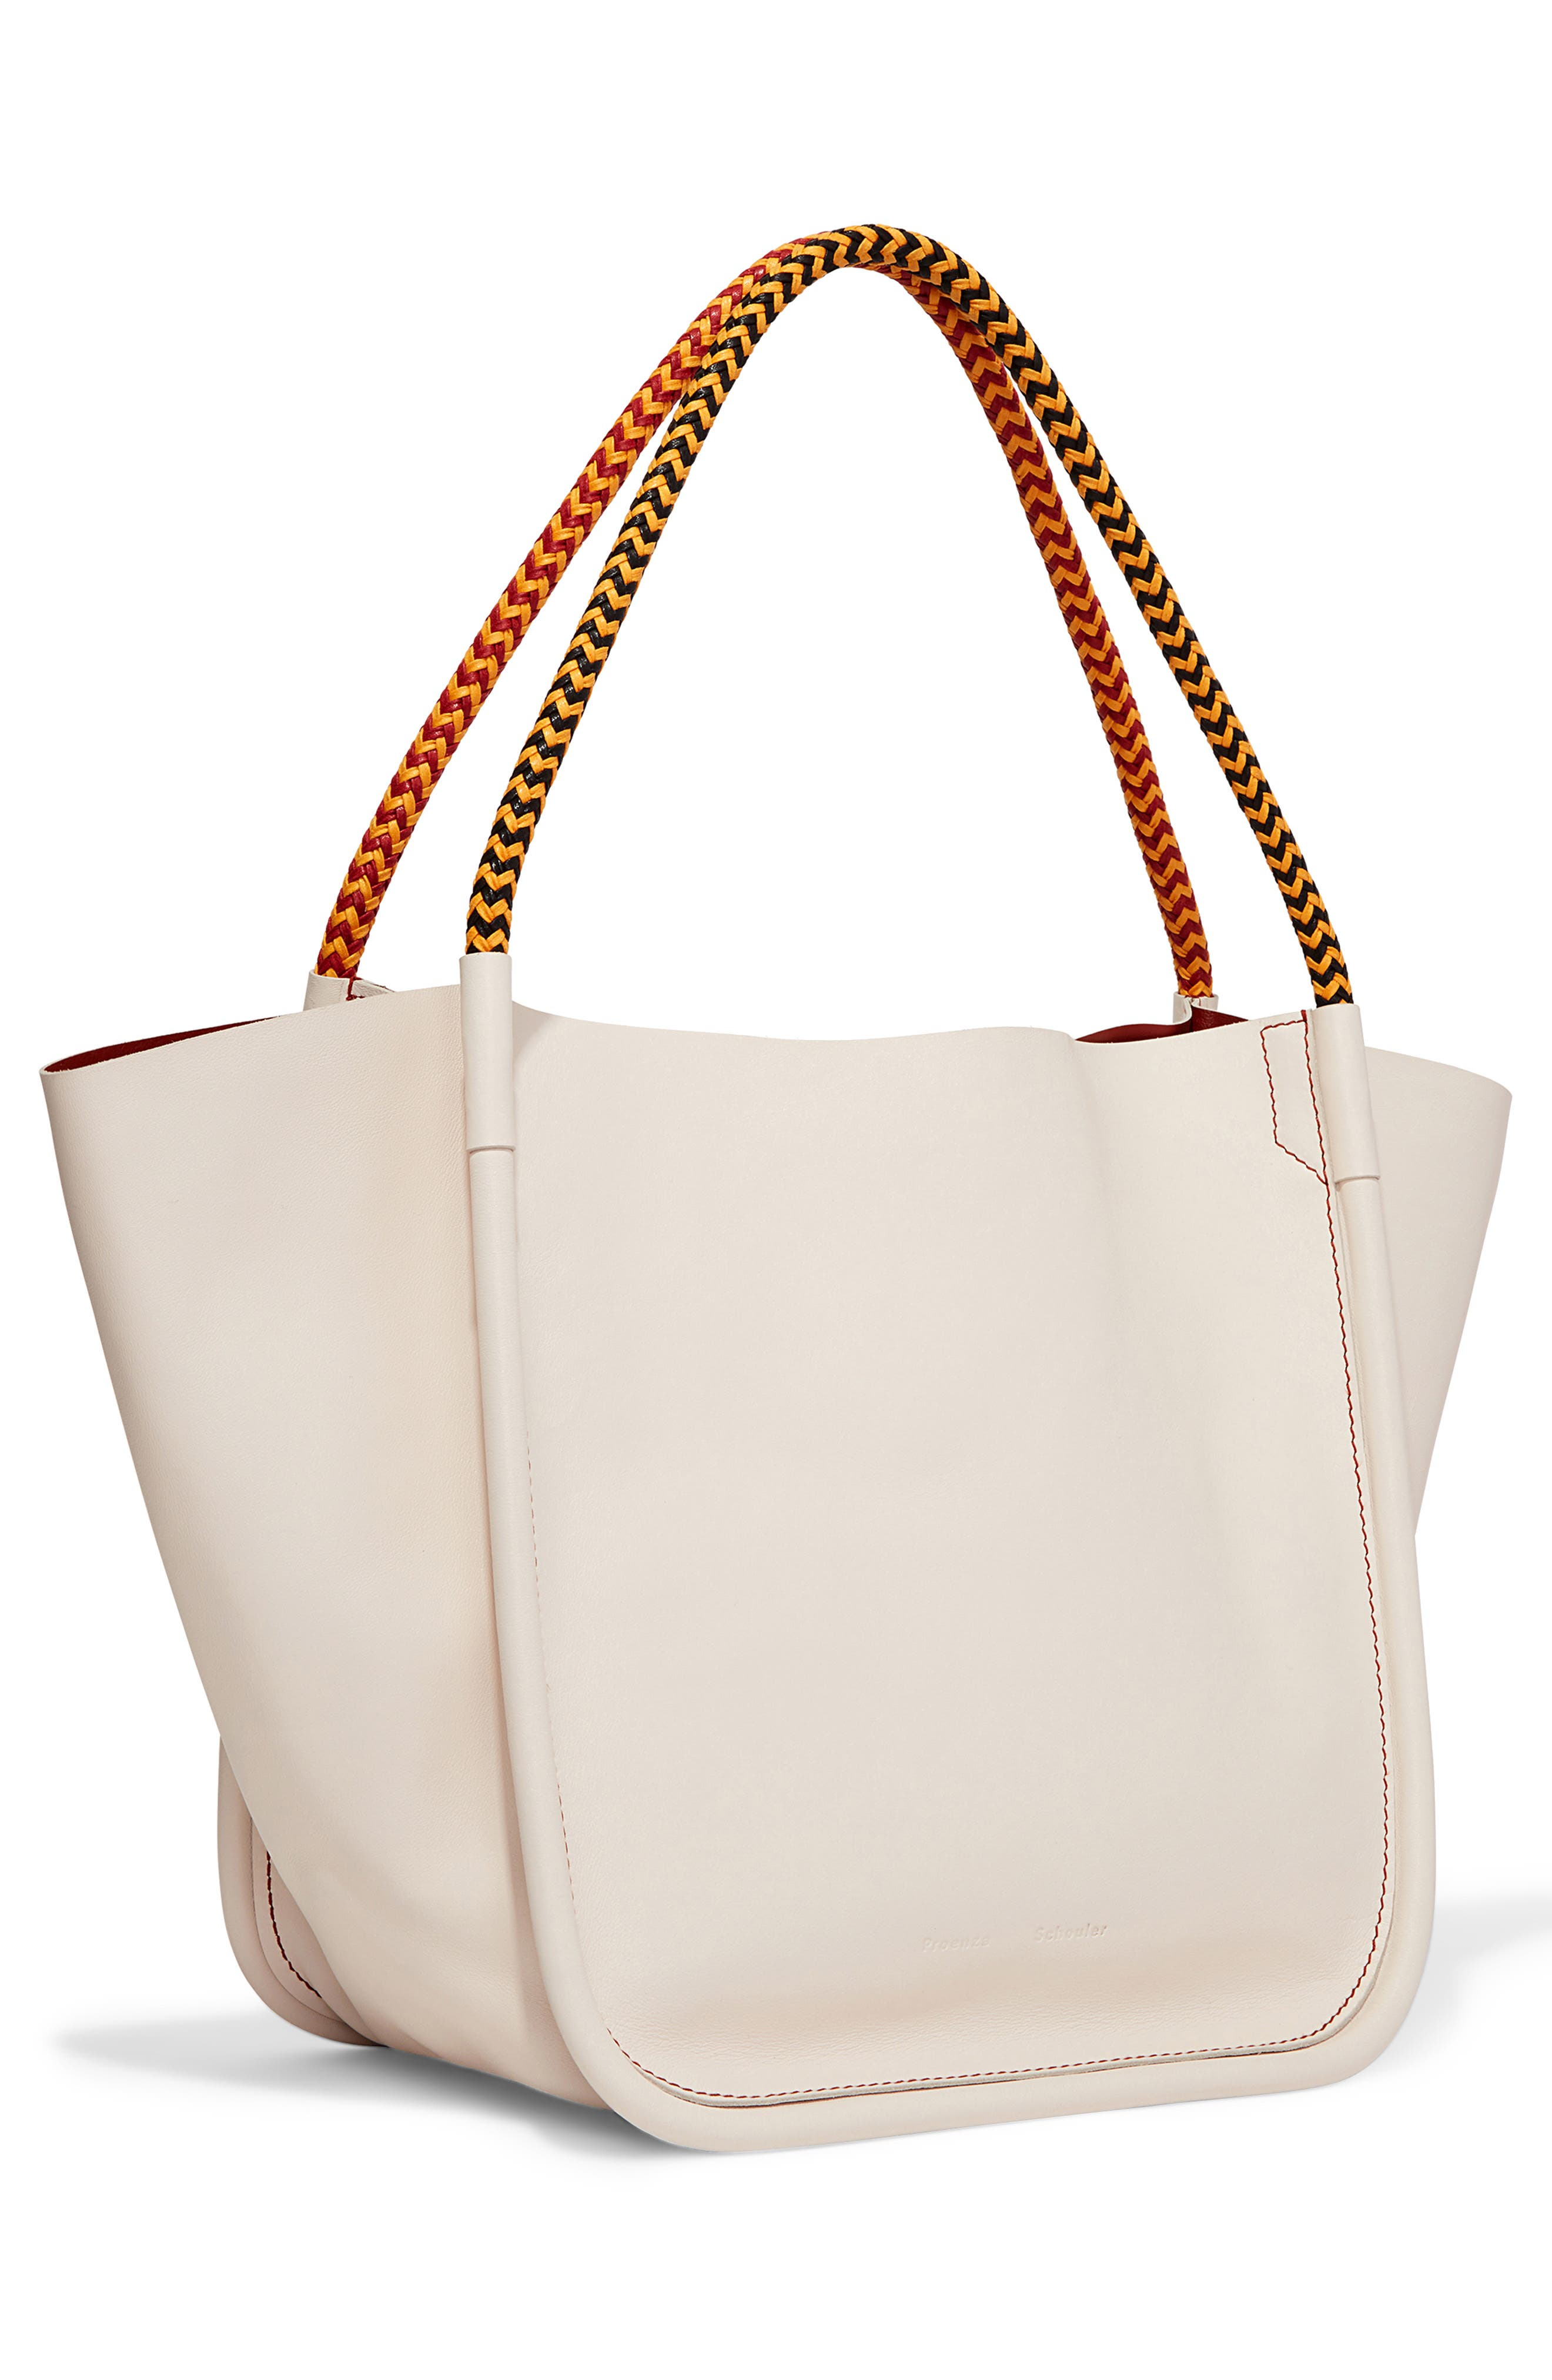 PROENZA SCHOULER, Large Calfskin Leather Tote, Alternate thumbnail 5, color, CLAY